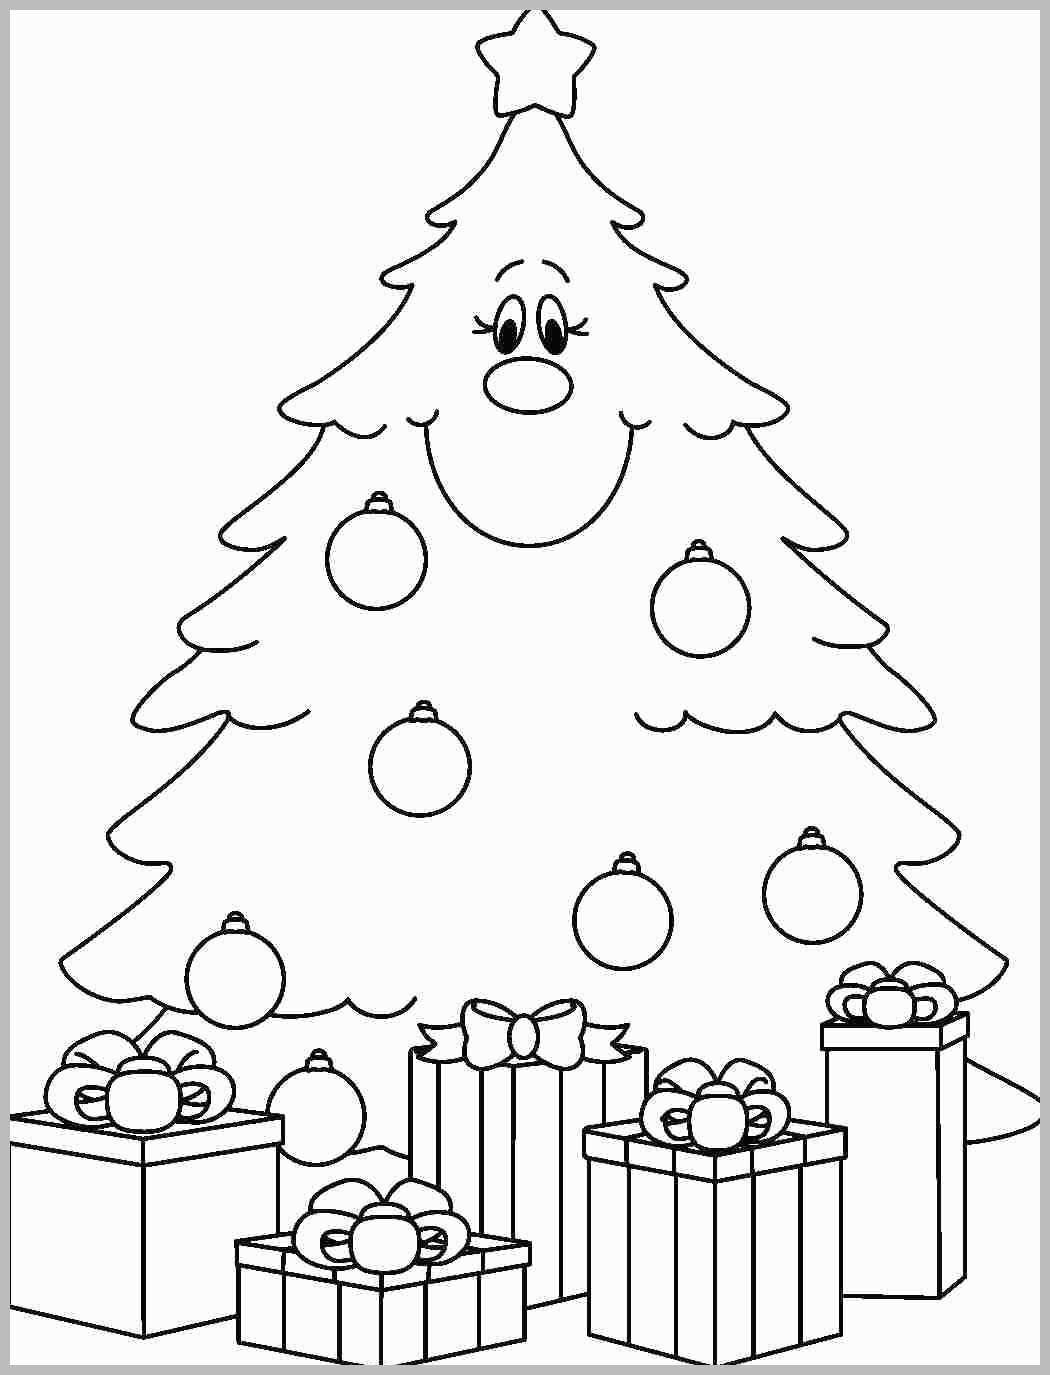 Christmas Tree Coloring Pages Printable With Page Creative Images Collect